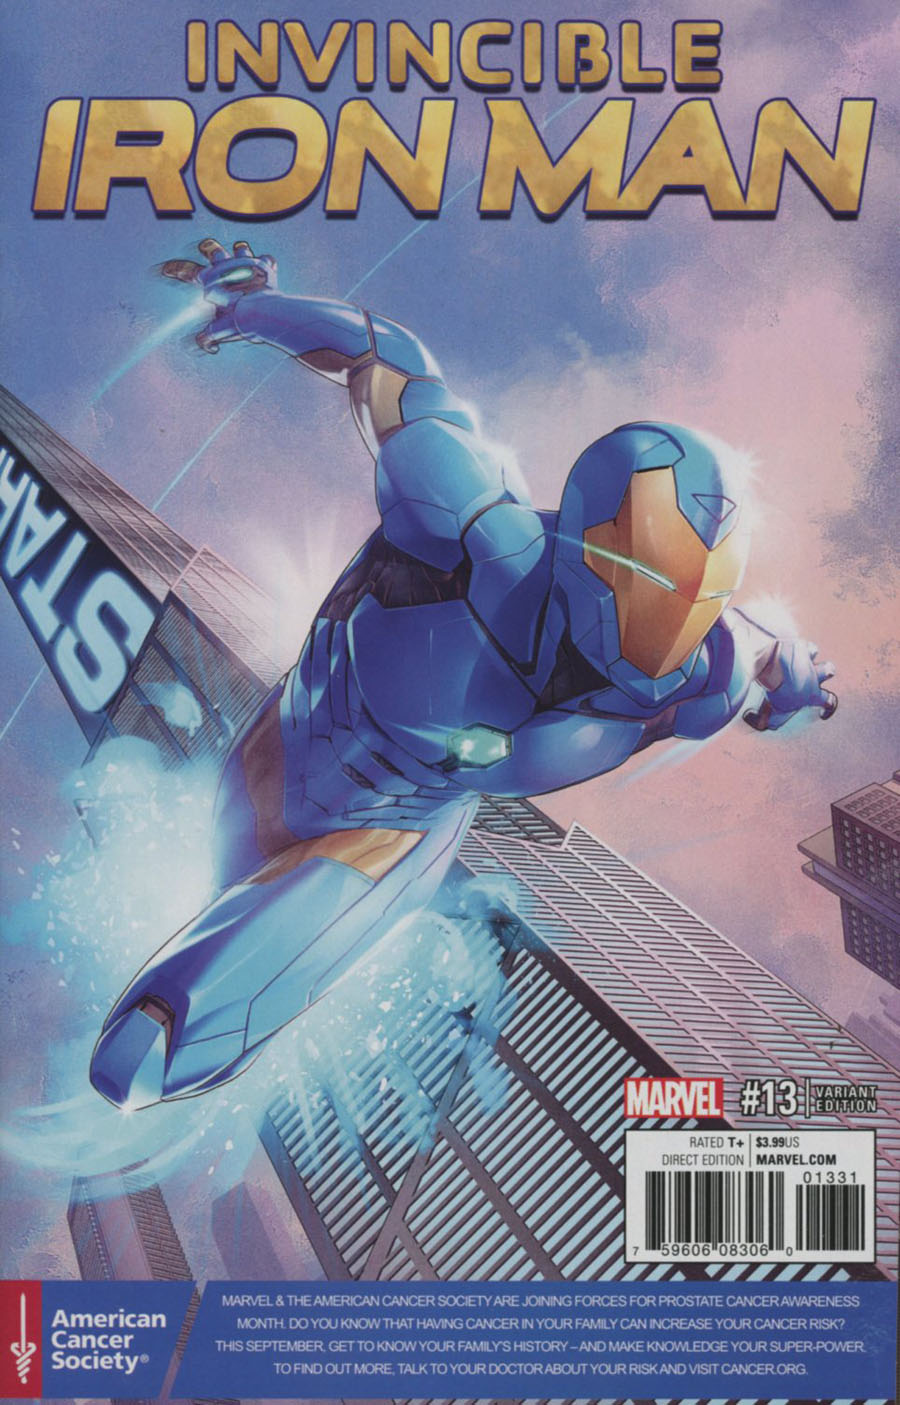 Invincible Iron Man Vol 2 #13 Cover C Variant Jamal Campbell Prostate Awareness Month Cover (Civil War II Tie-In)